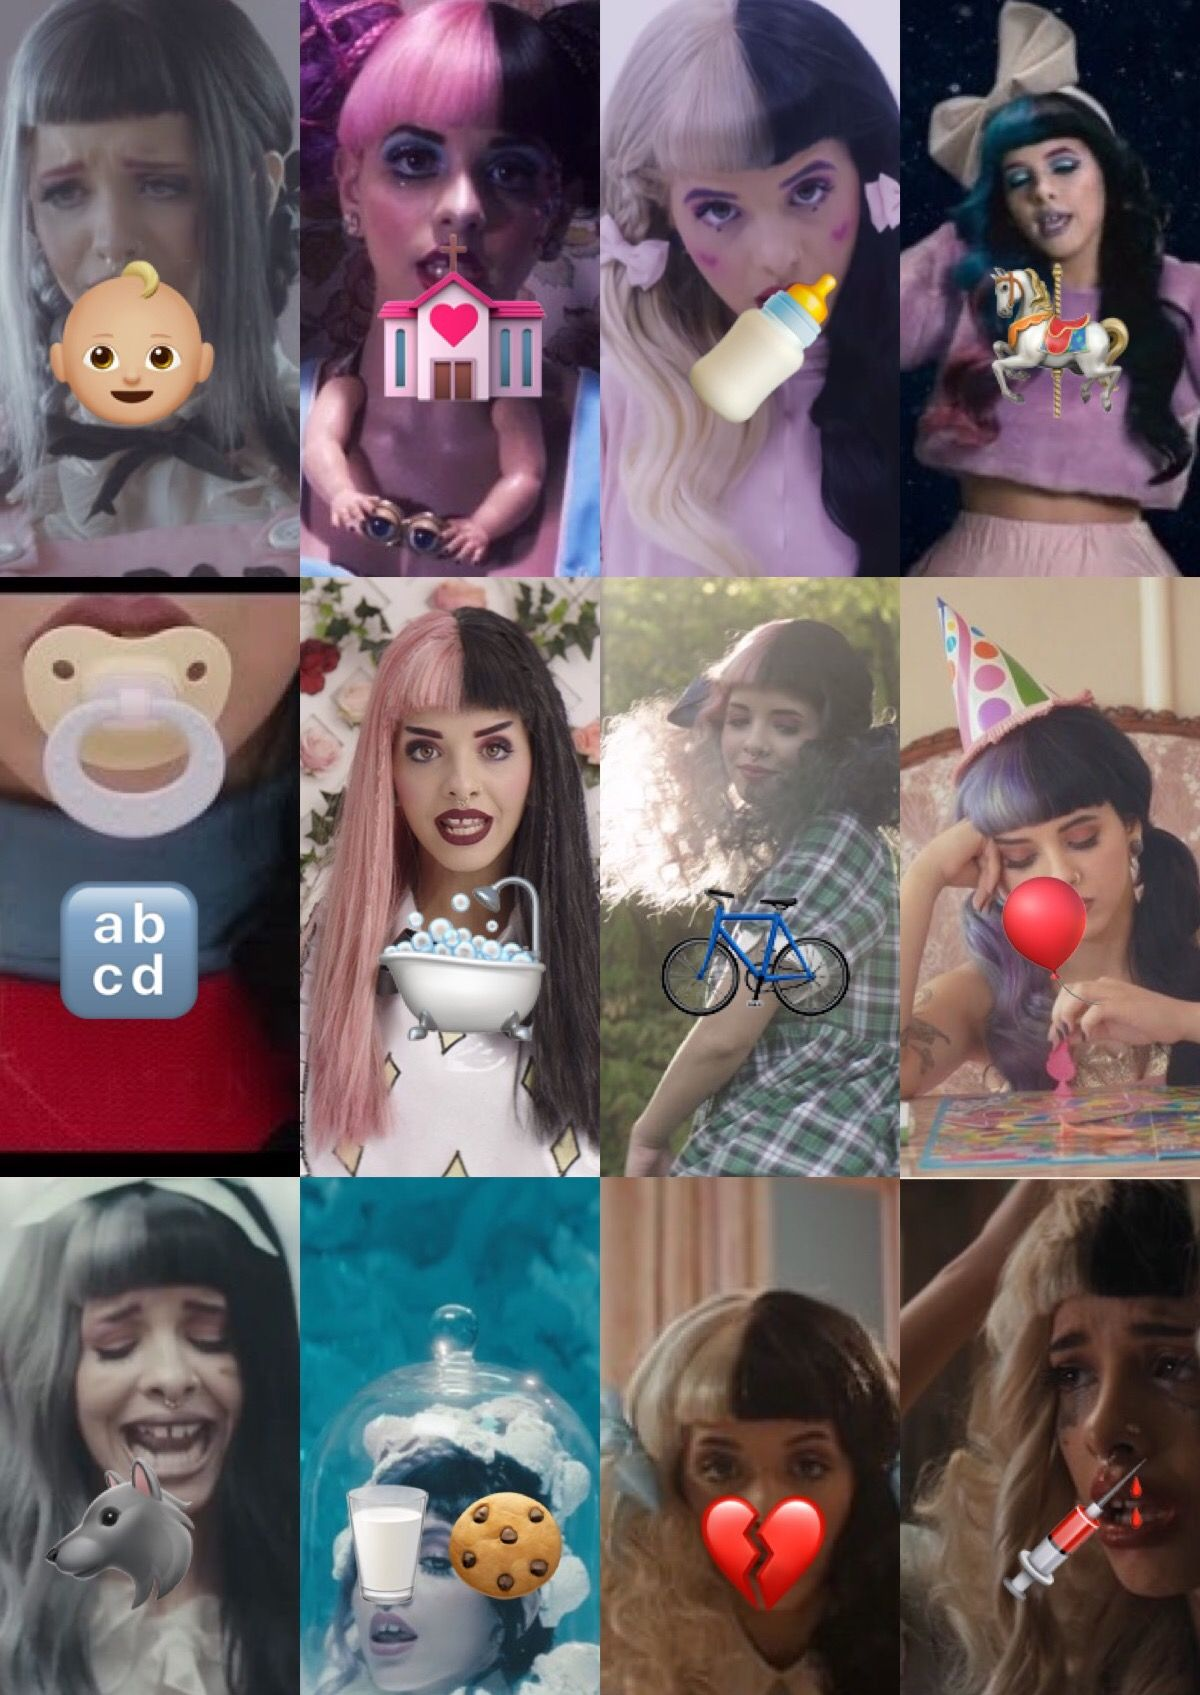 Melanie Martinez Crybaby Described With Emojis Even Tho Mad Hatter Isn T There By Rileyogden Melanie Martinez Lyrics Melanie Martinez Melanie Martinez Music